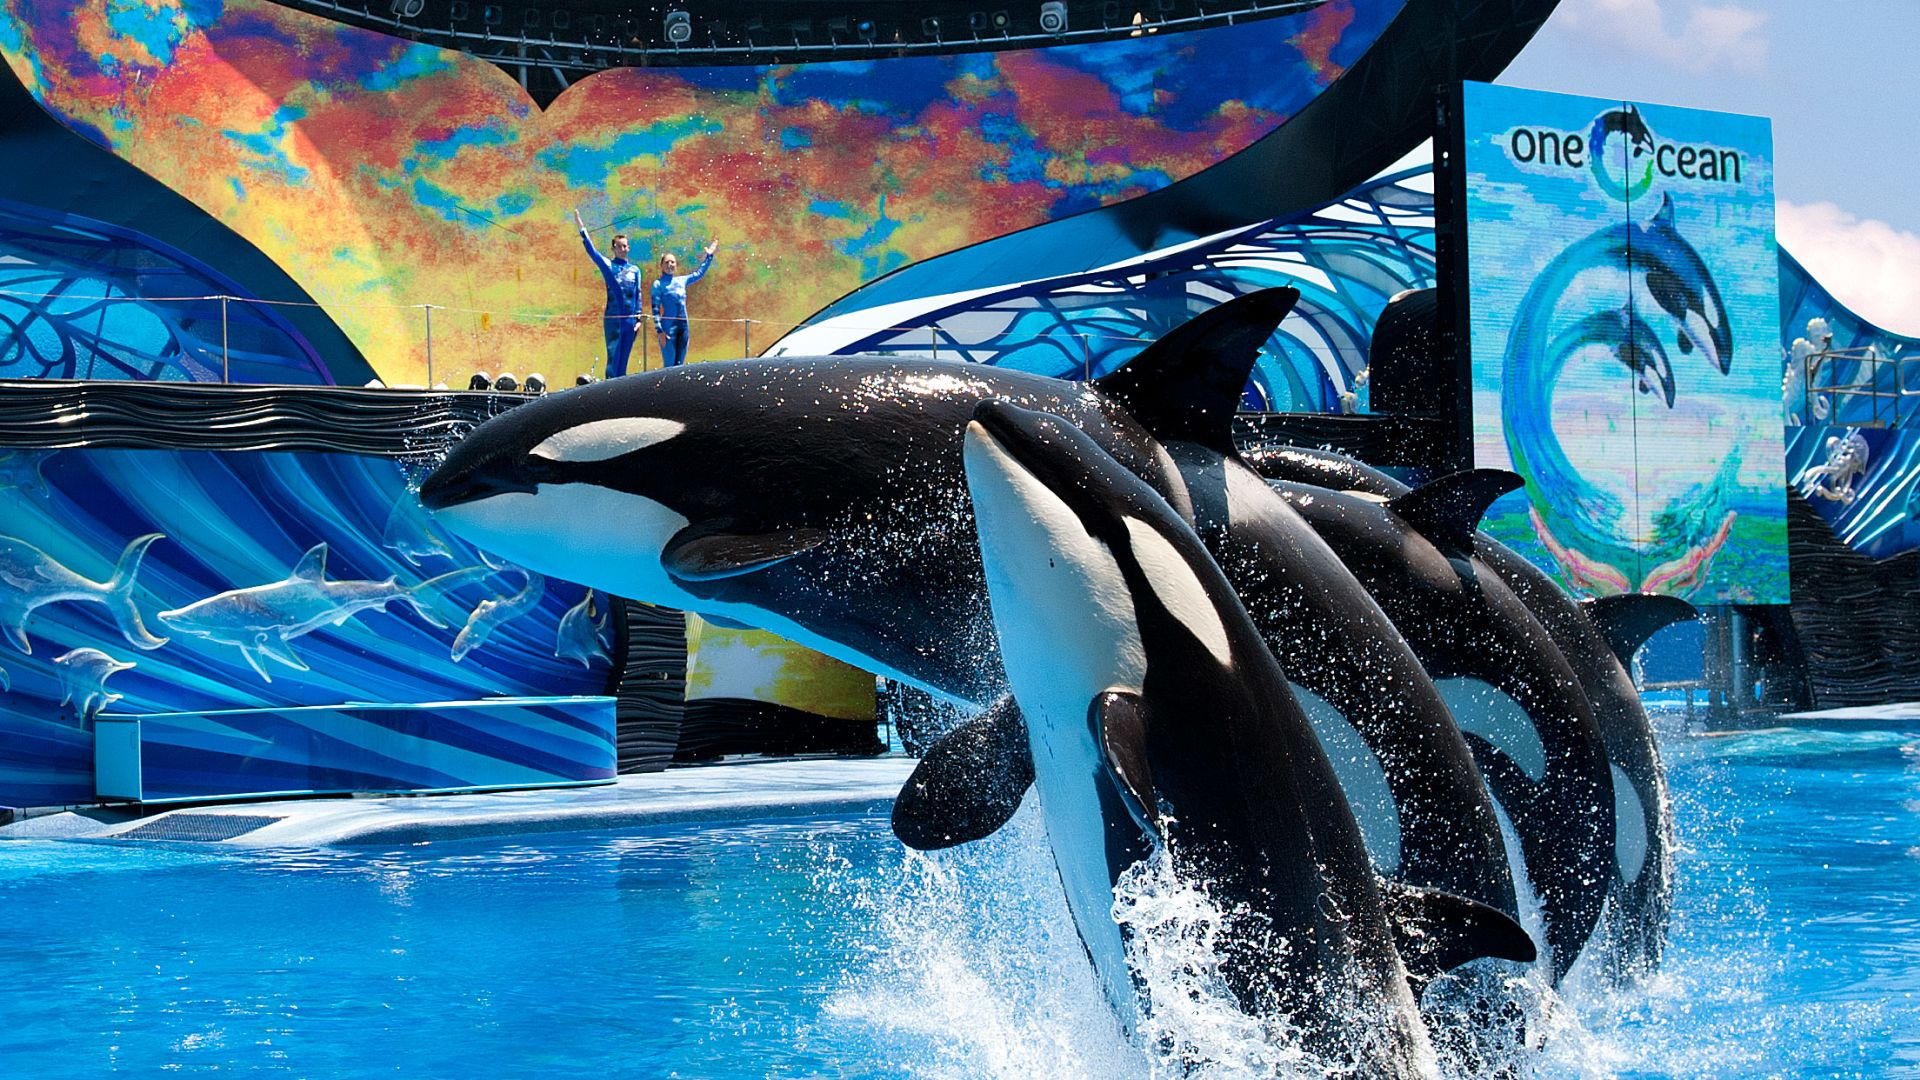 ᐅ Seaworld Orlando - Video: Hinter den Kulissen ...